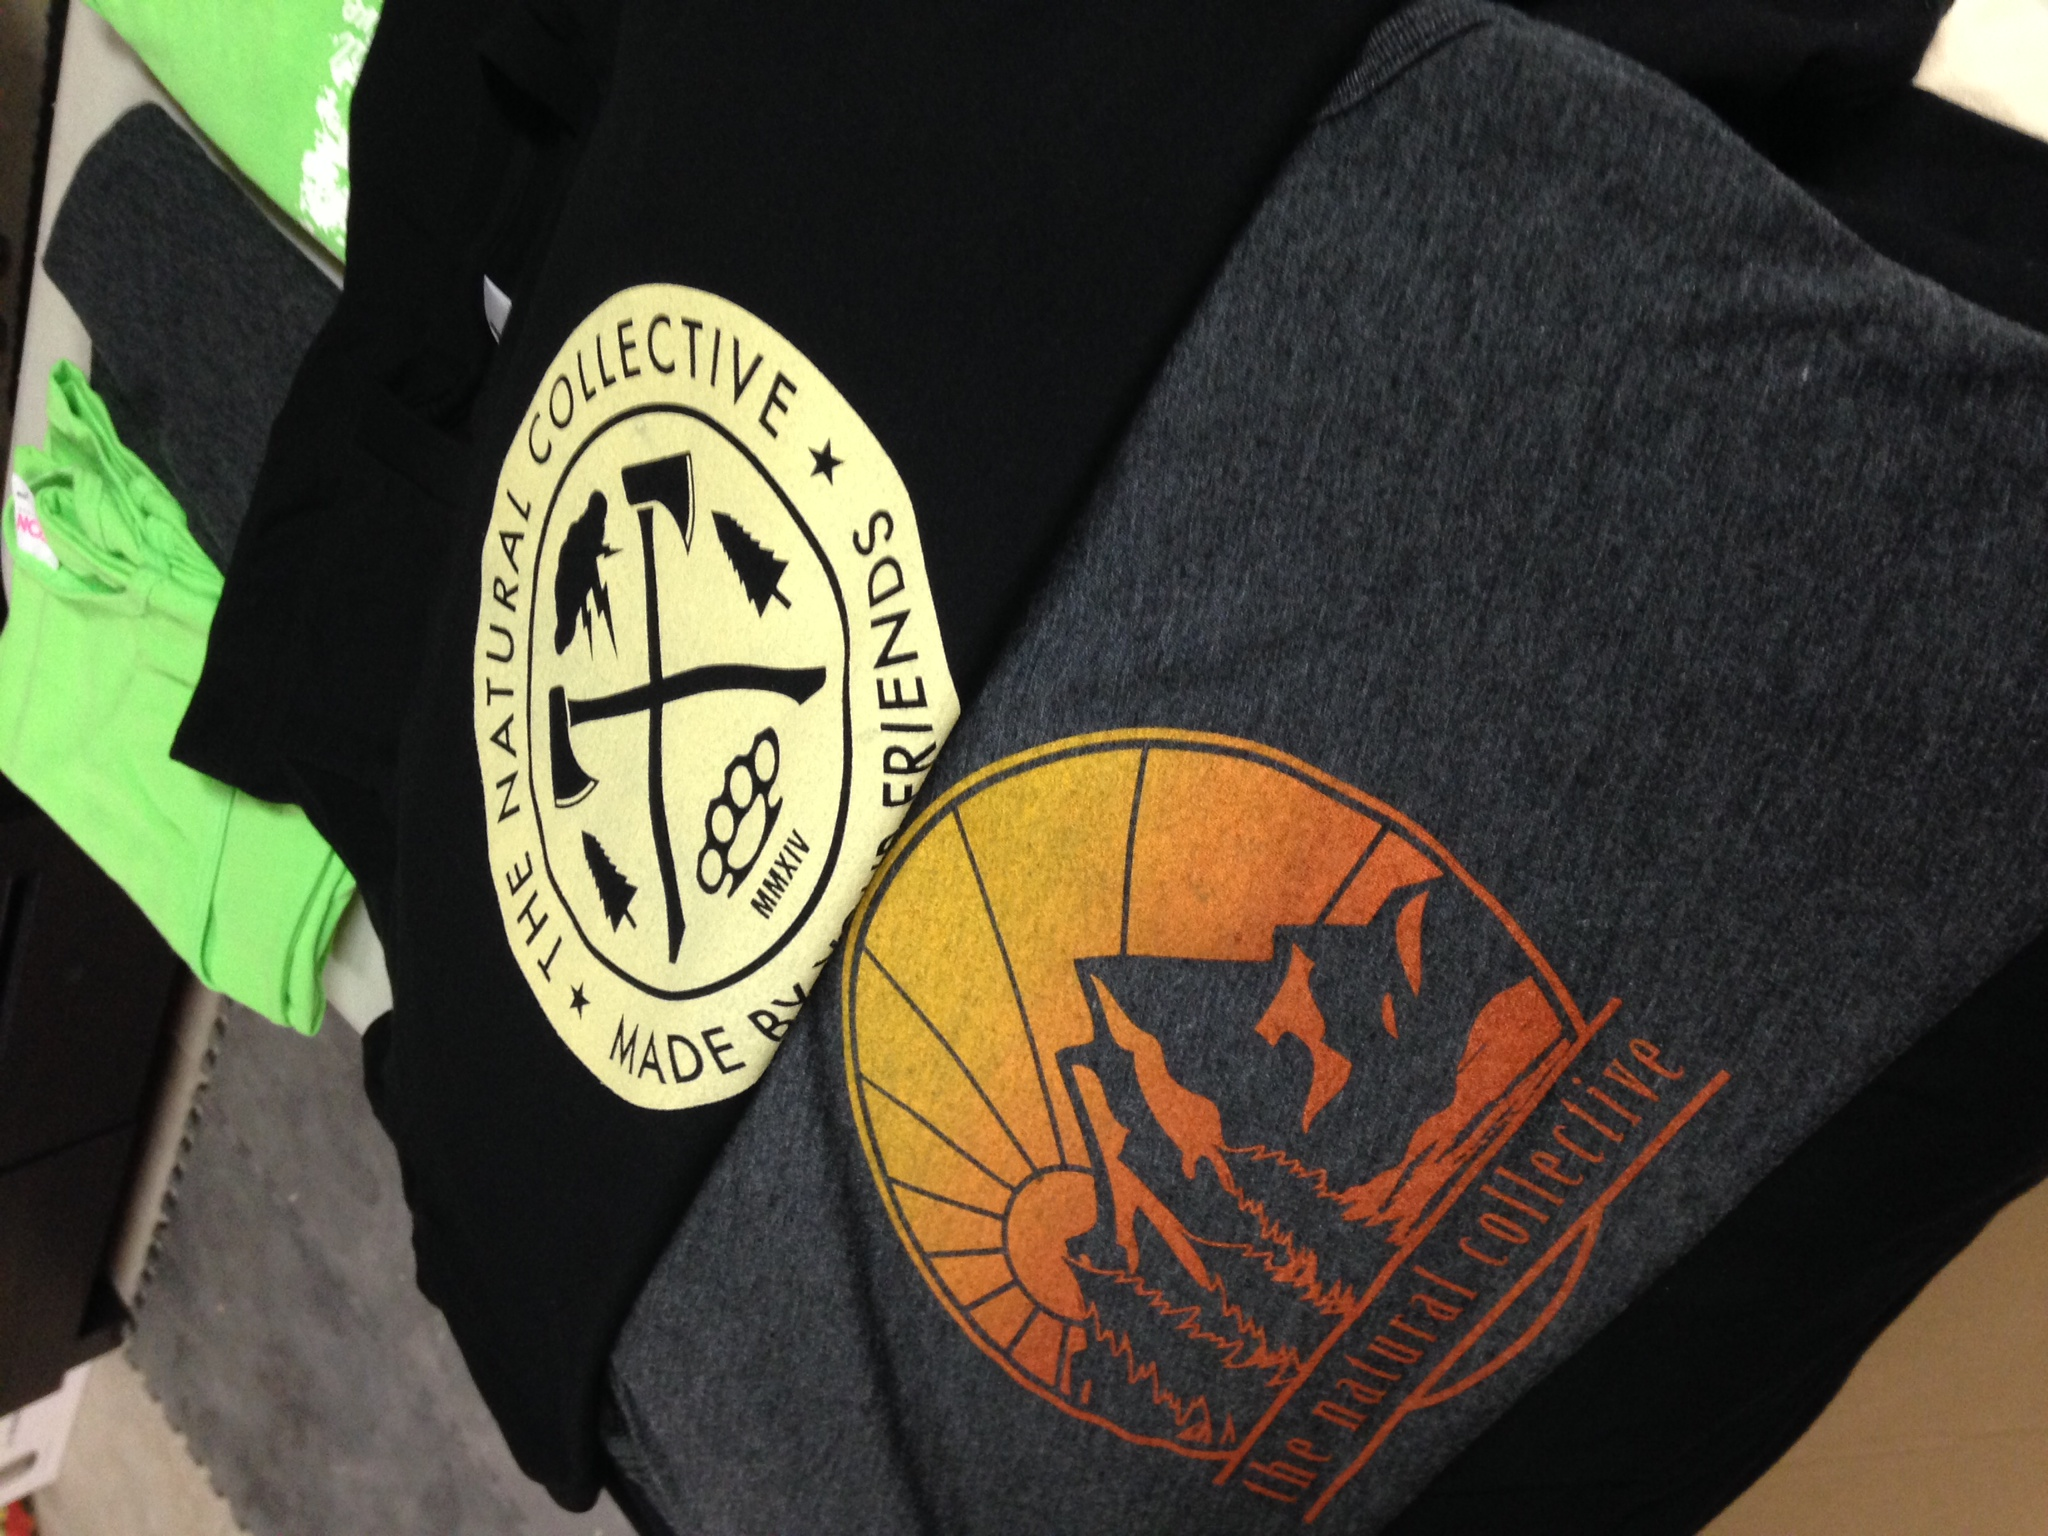 Order of hand-made American Apparel ethical tee shirts